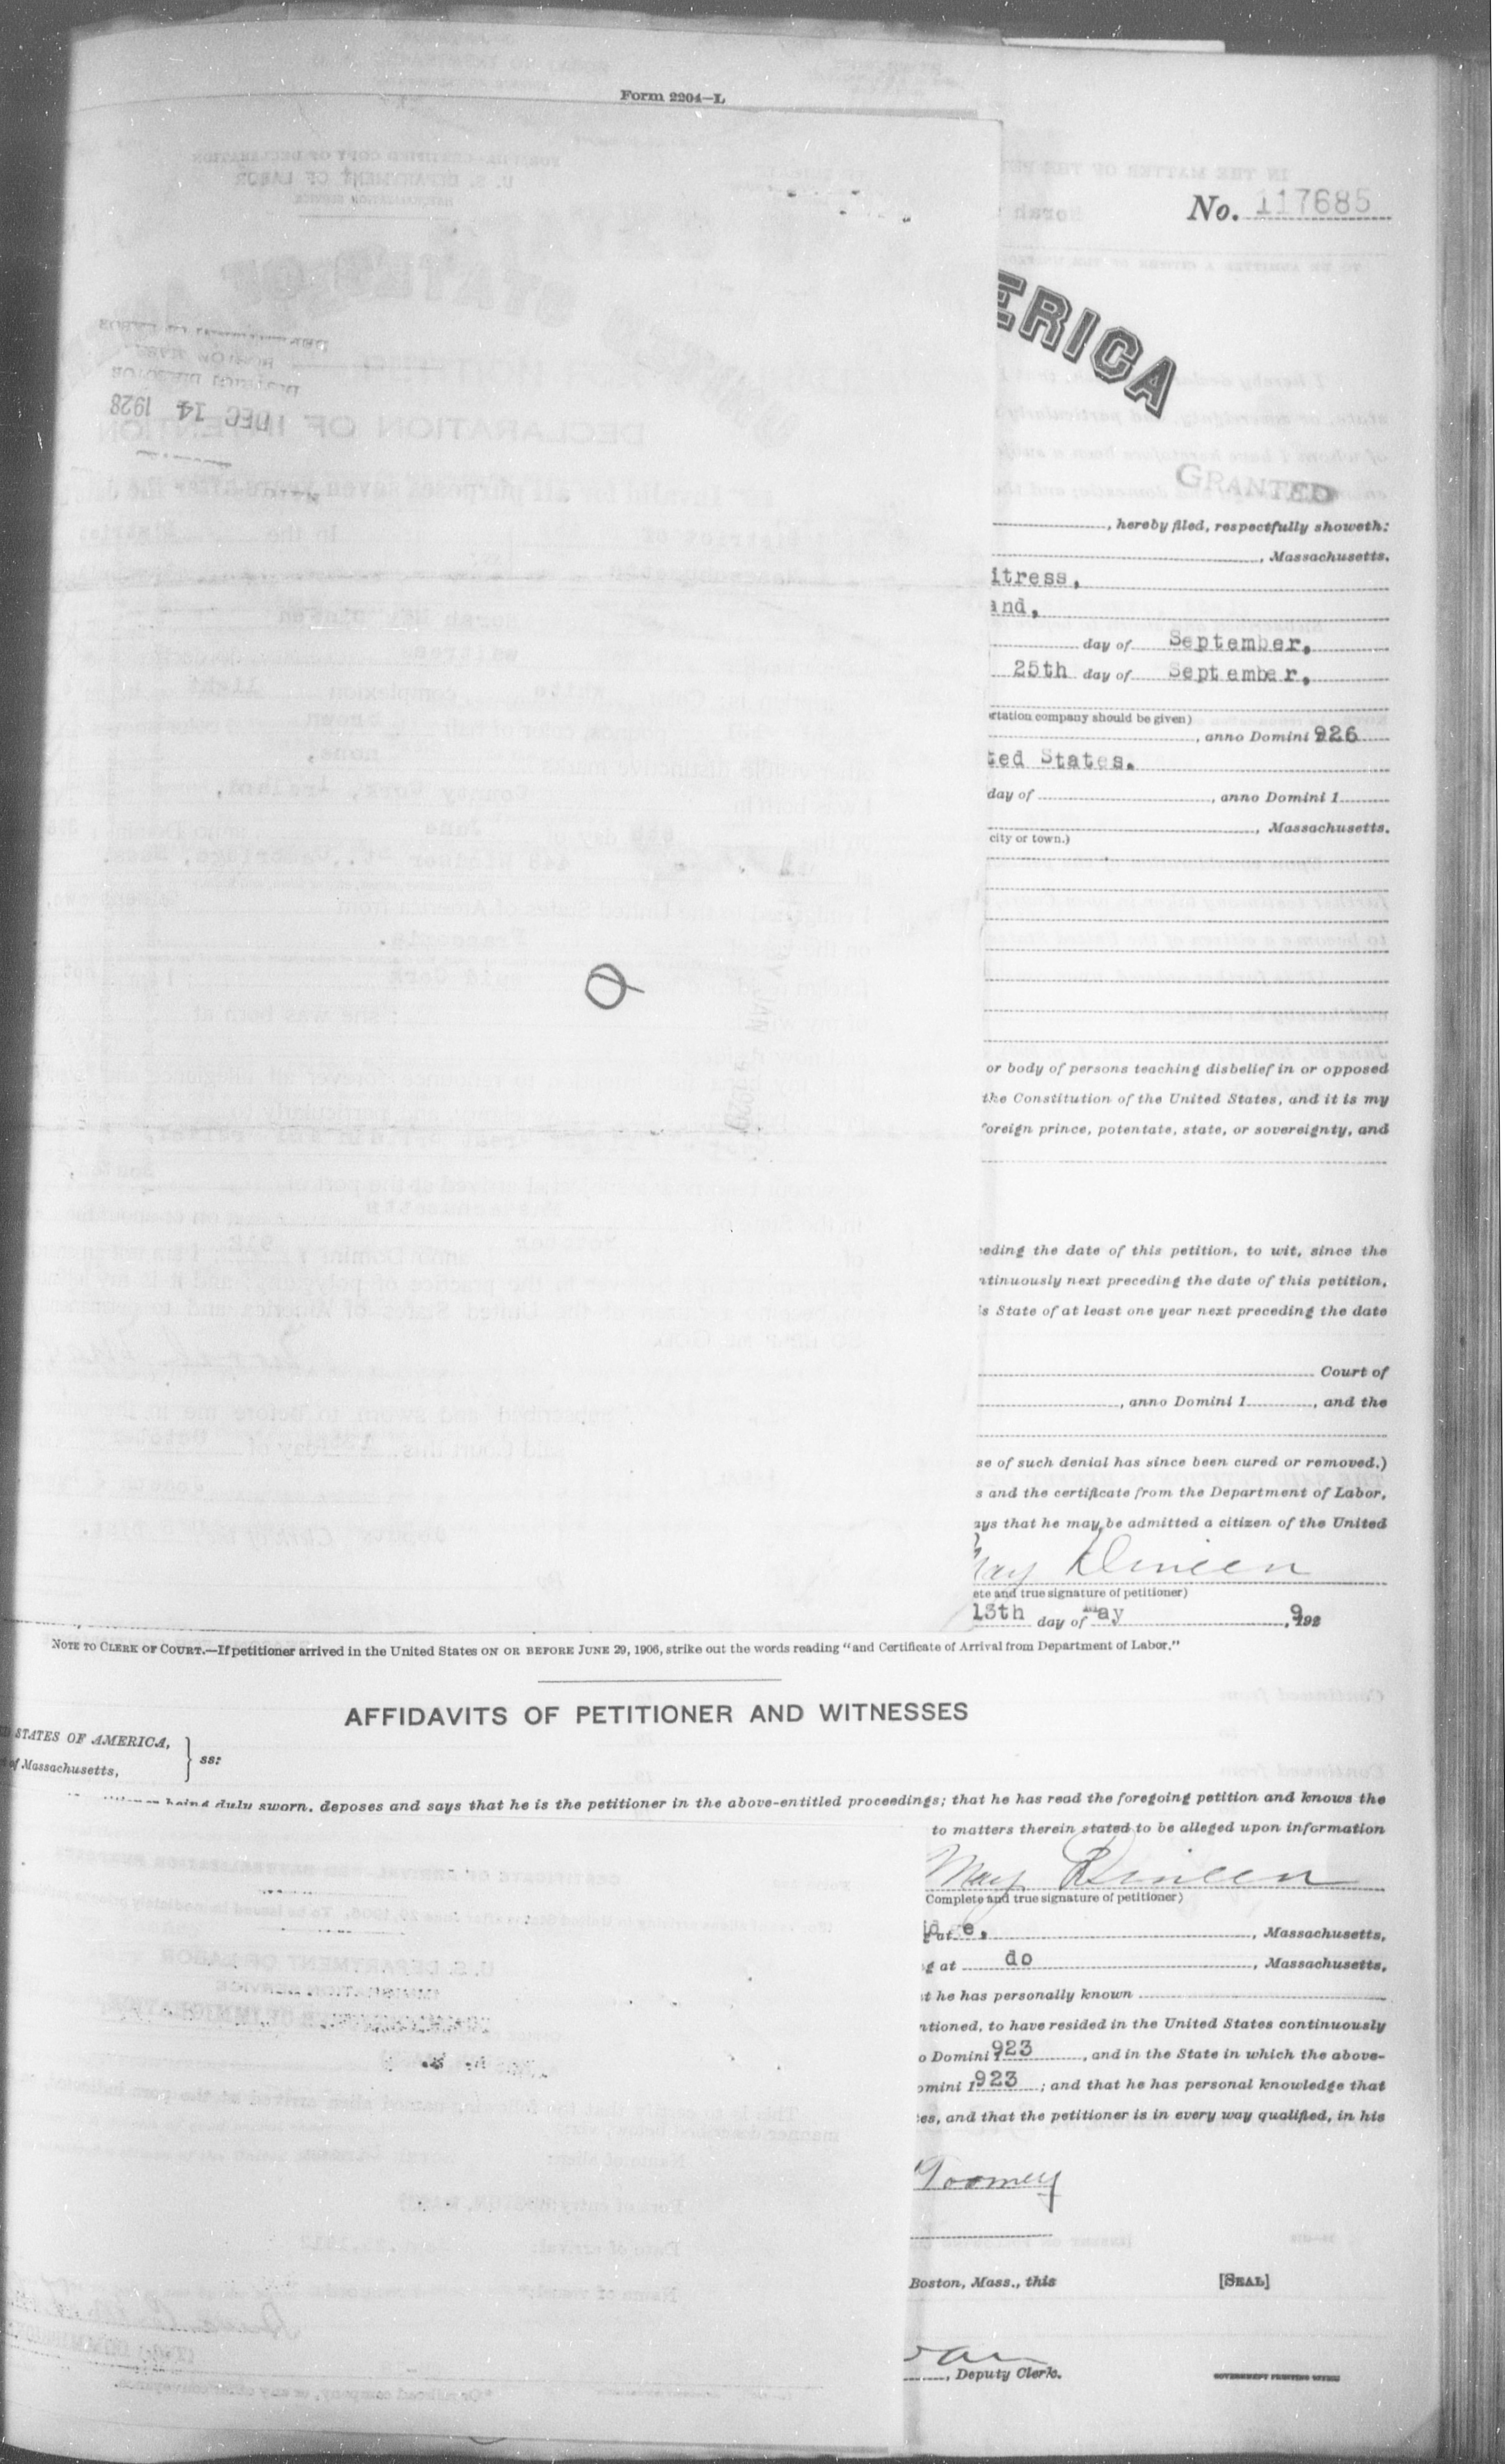 Petition for Naturalization of Nora May Dineen